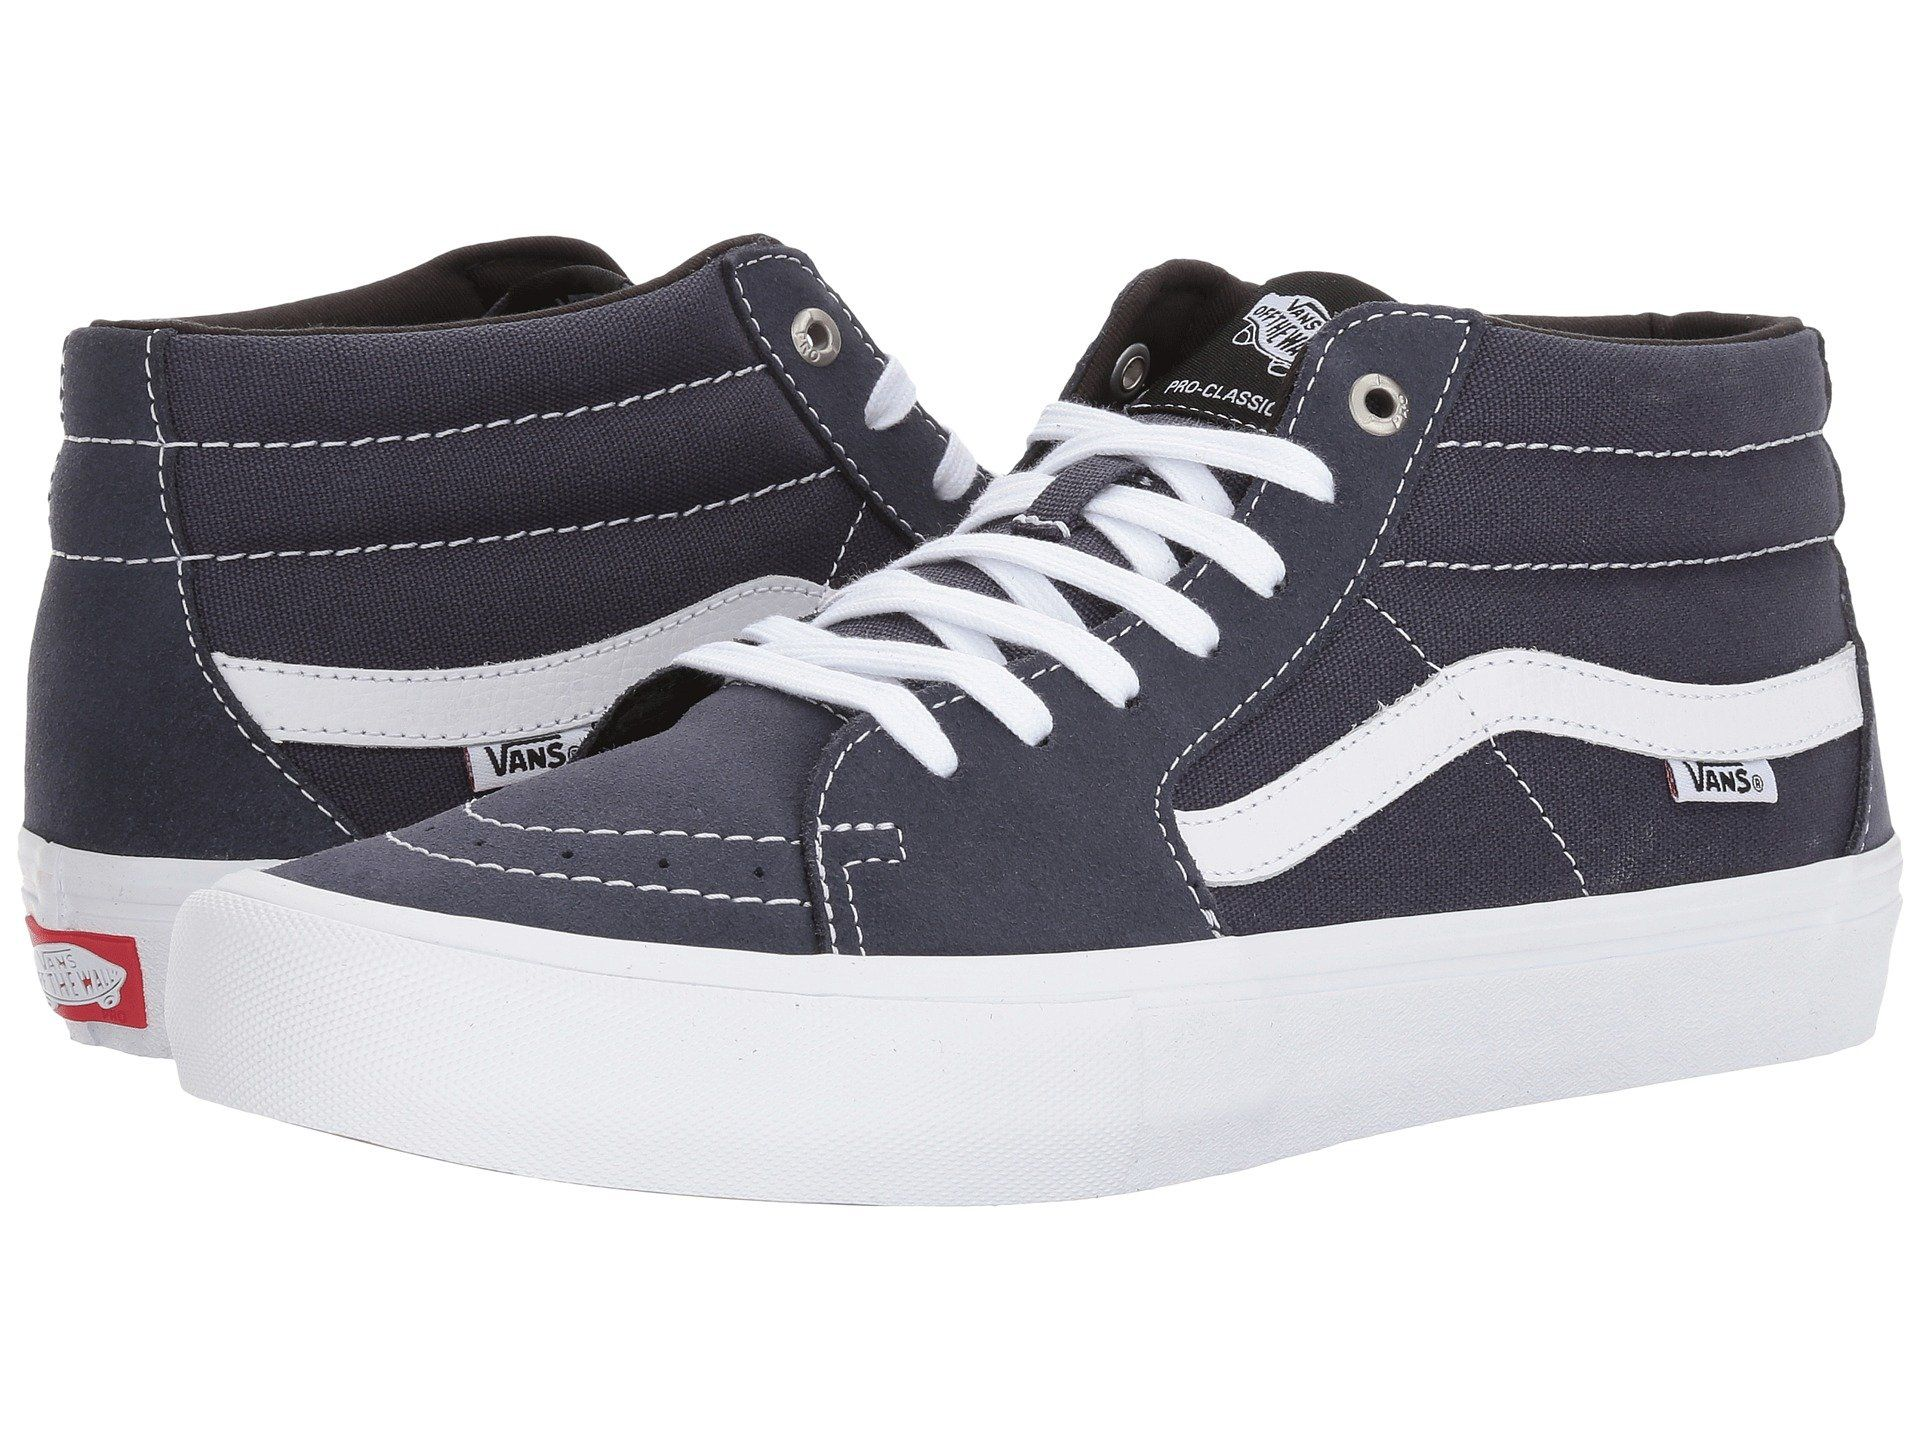 c8b012be24 VANS Sk8-Mid Pro.  vans  shoes